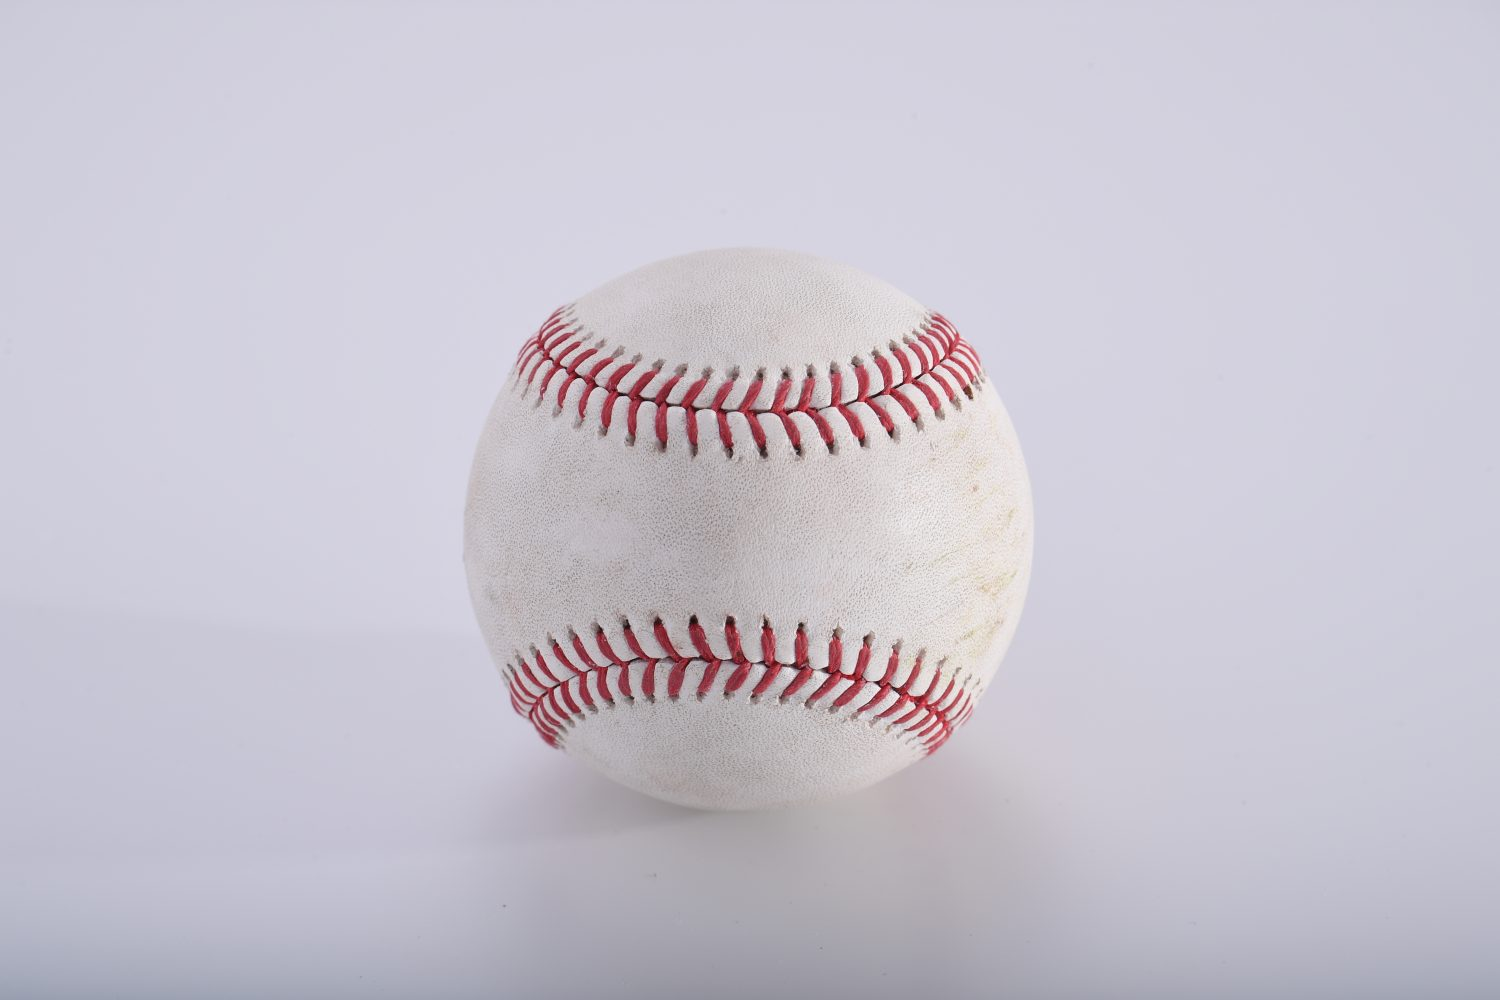 Game-Used Ball from Pete Alonso's 53rd Home Run